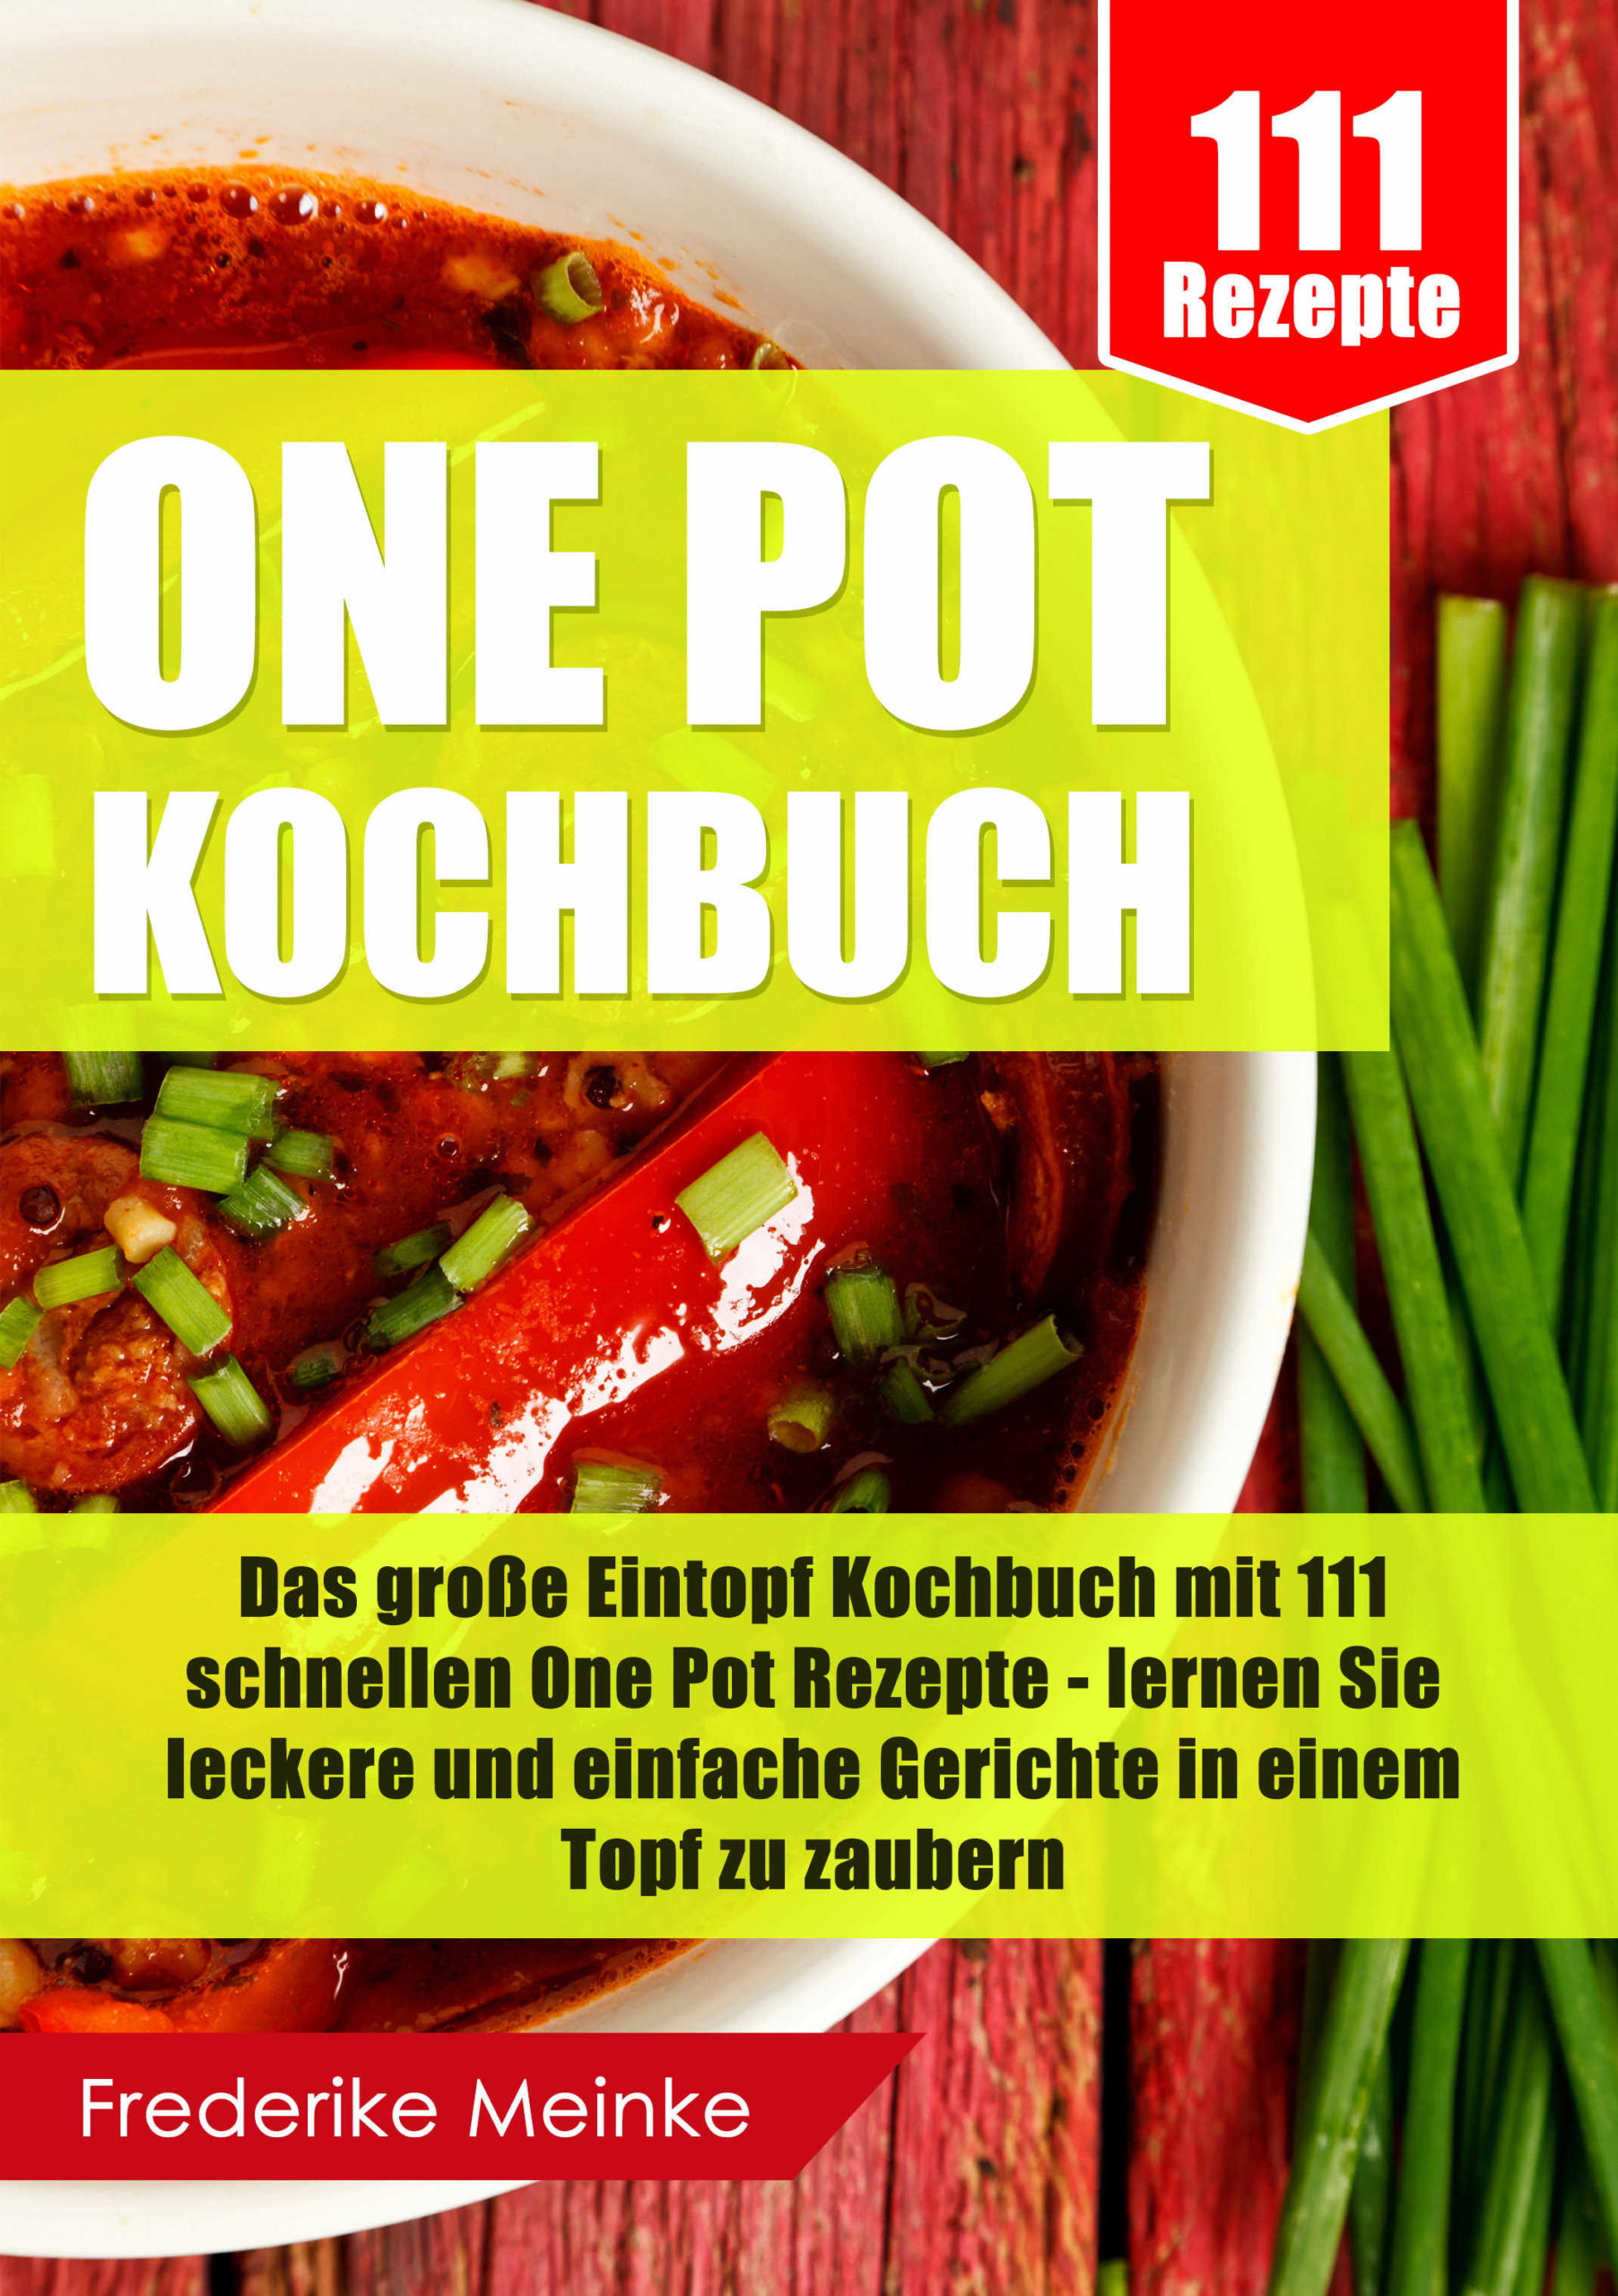 One Pot Kochbuch scaled